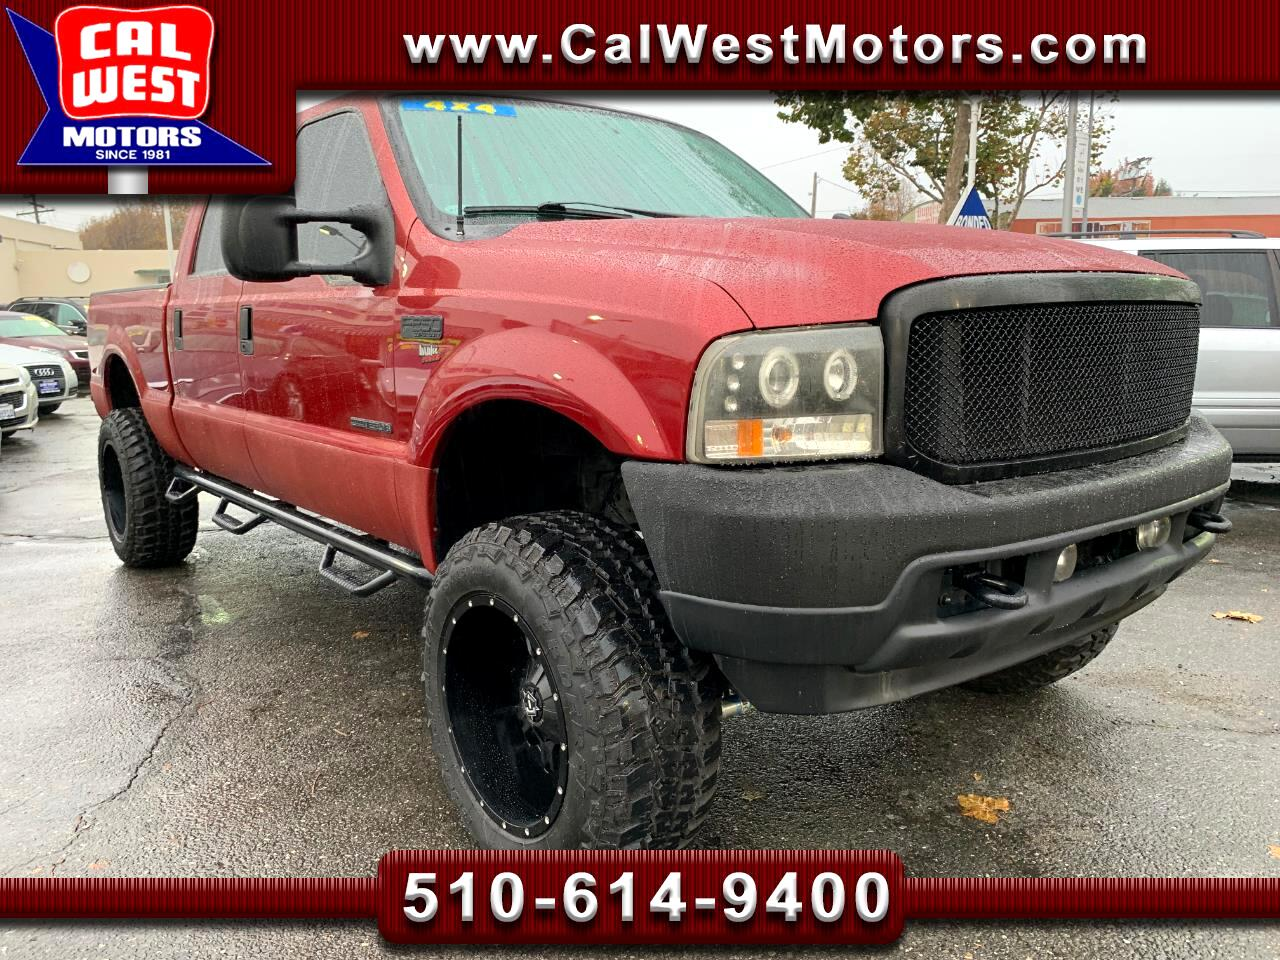 2001 Ford F-250 SD 4X4 Crew Cab 7.3PowerStrokeDiesel SuperClean ExMtn